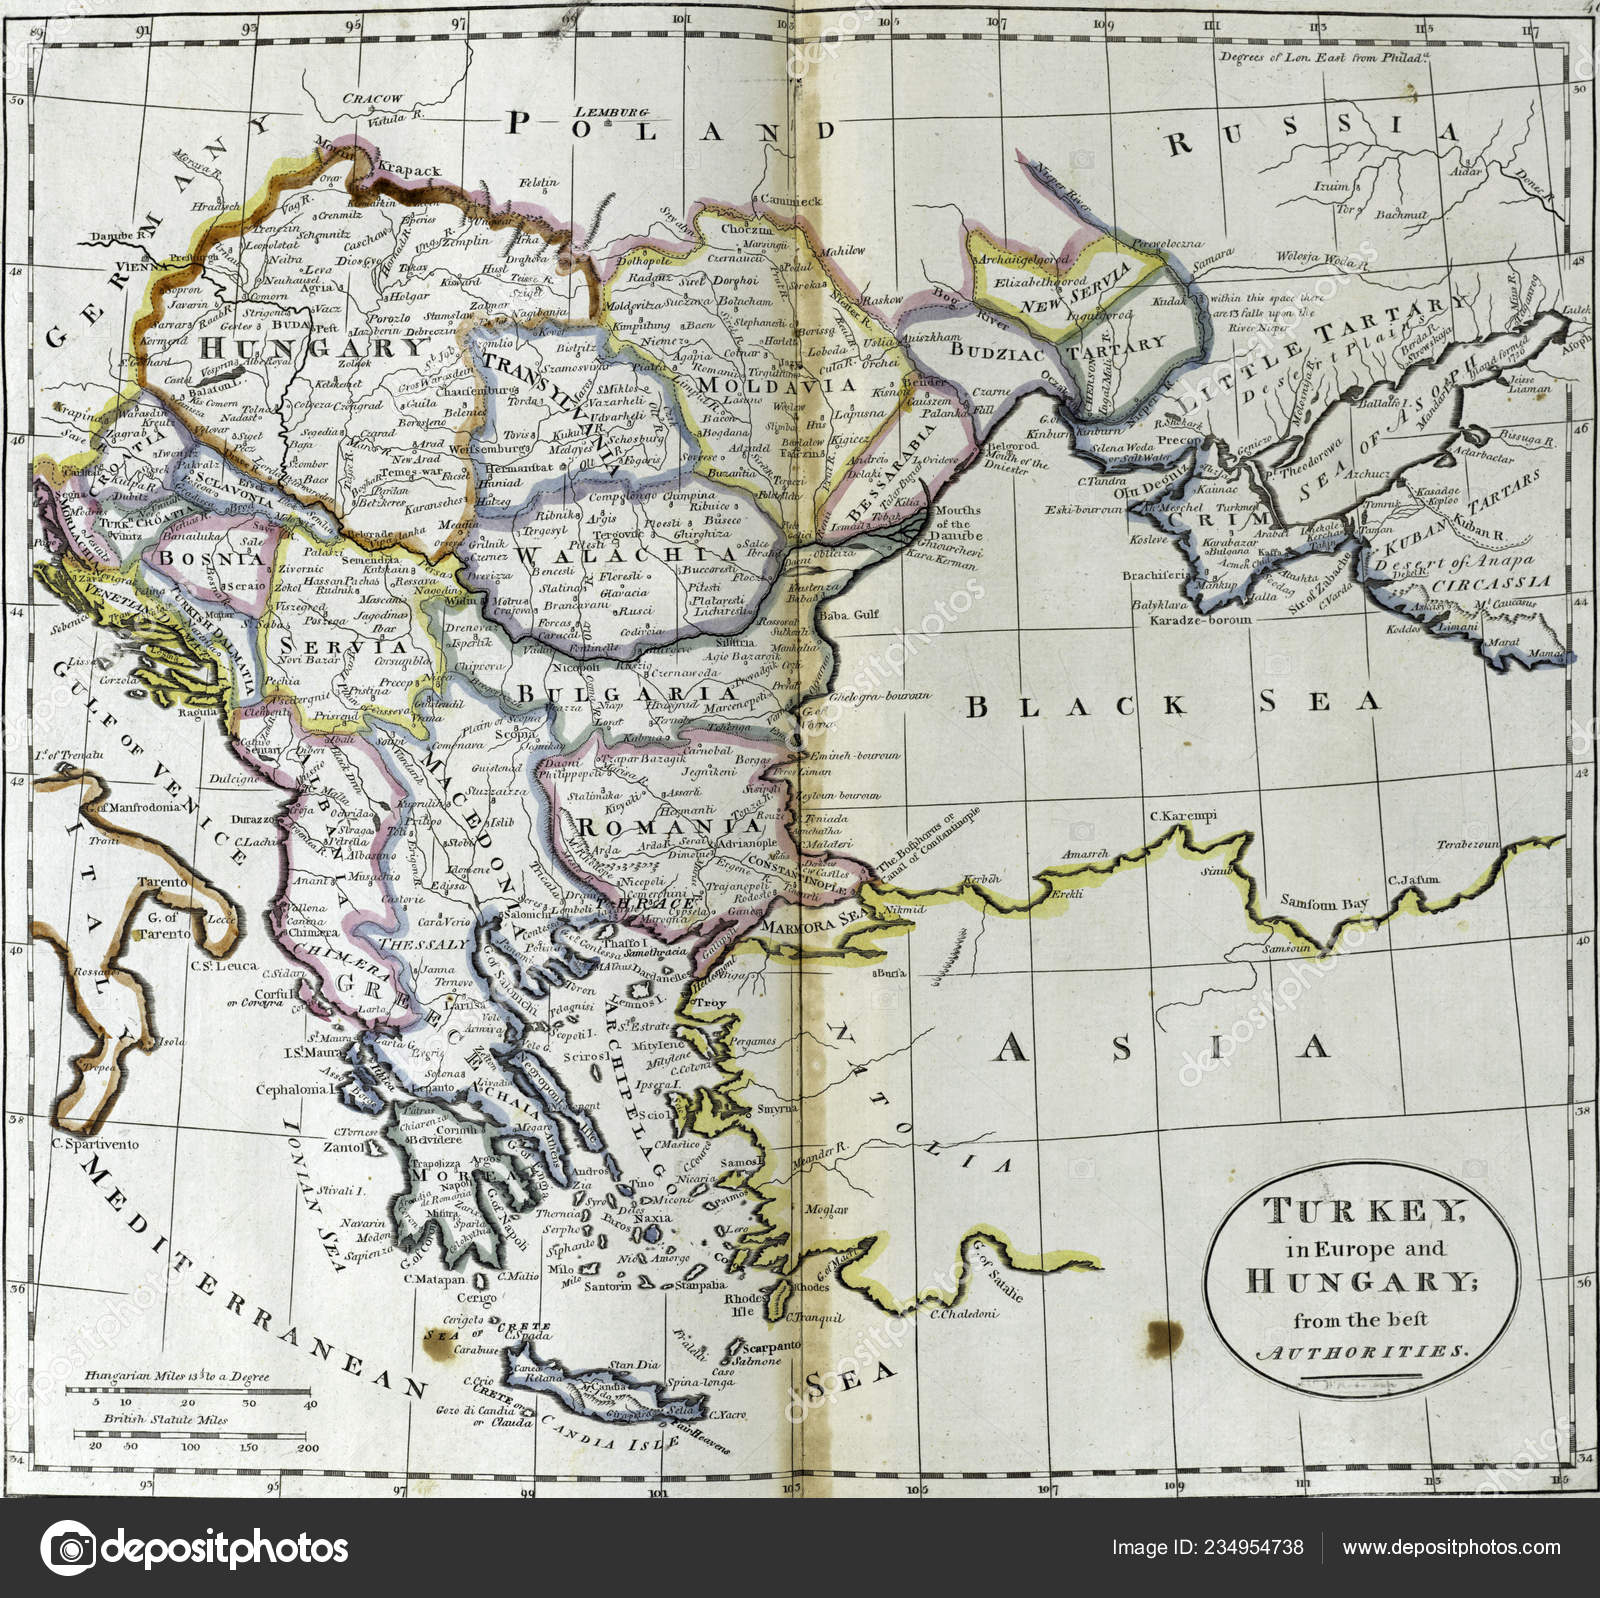 Image of: Antique Map Turkey Europe Hungary 18th Century Atlas Creator Carey Stock Editorial Photo C Cascoly 234954738